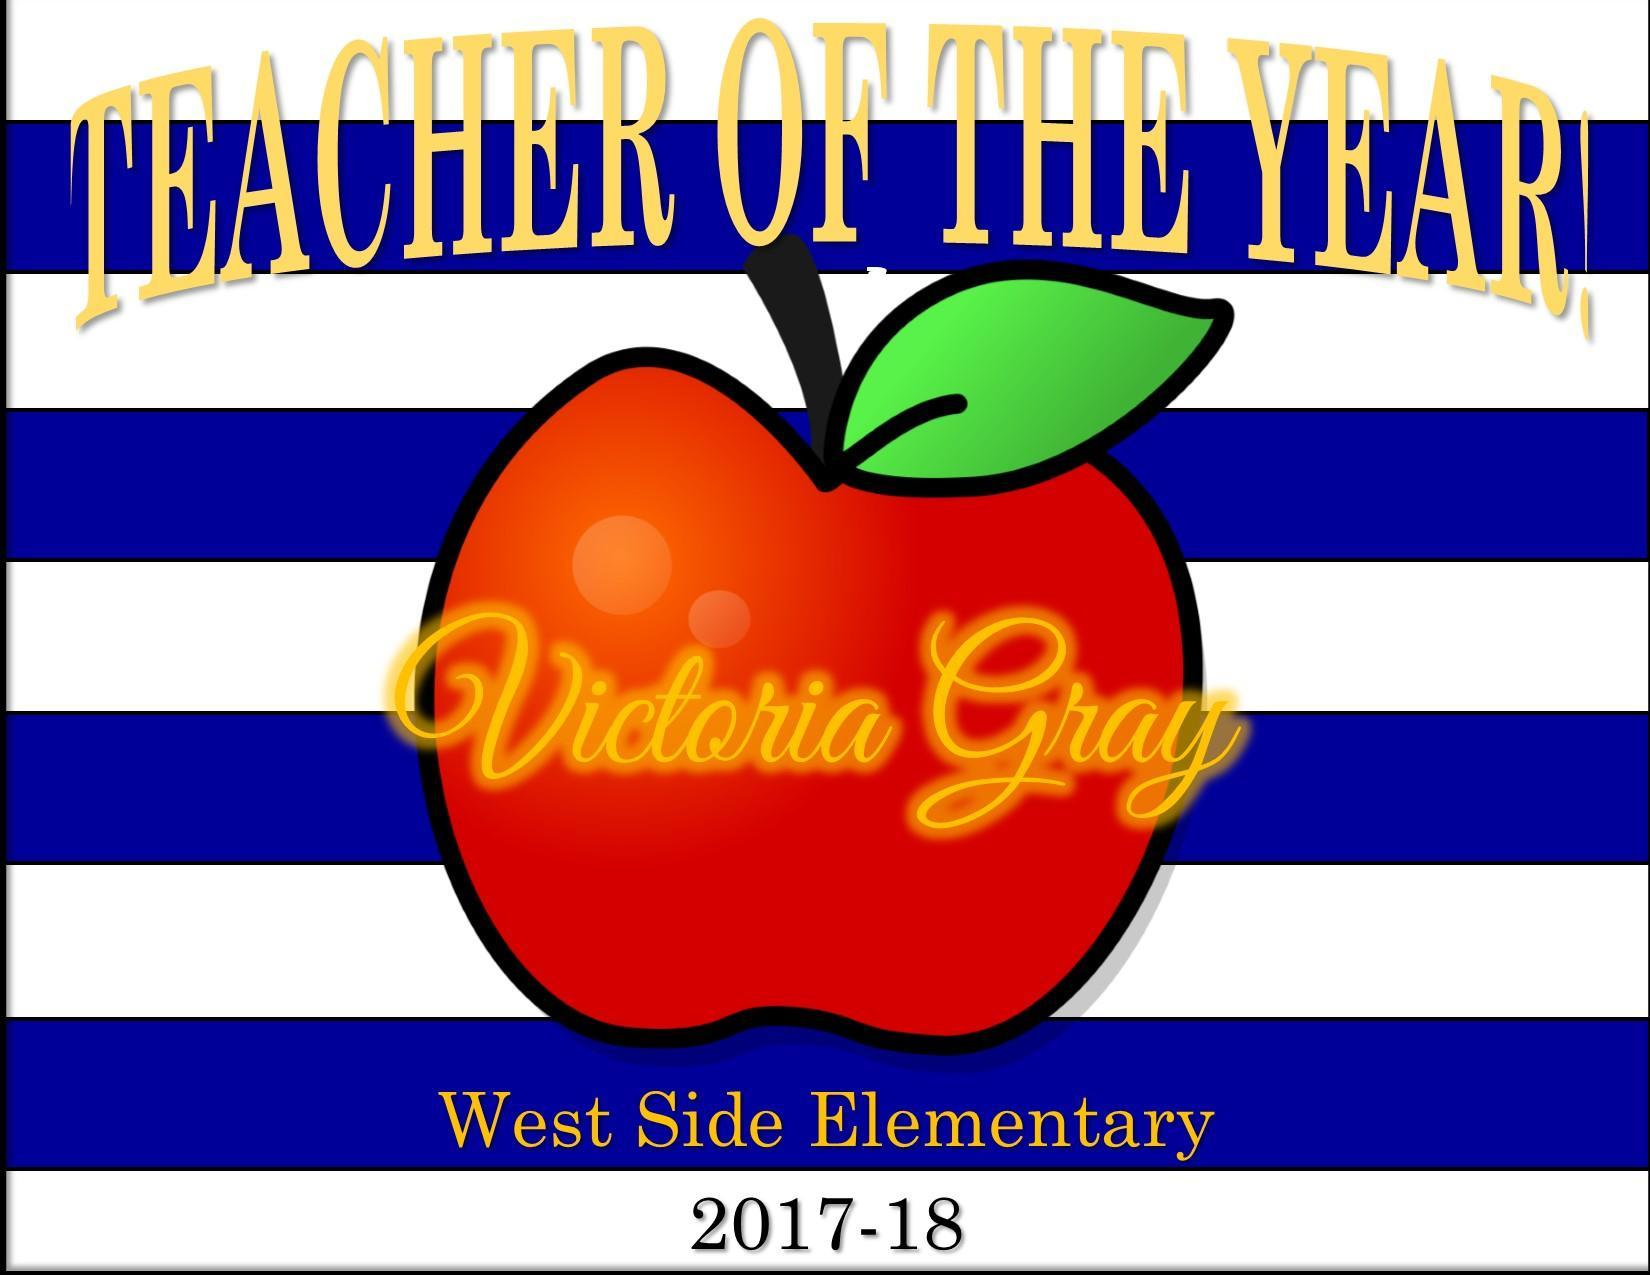 poster for Teacher of the Year Victoria Gray